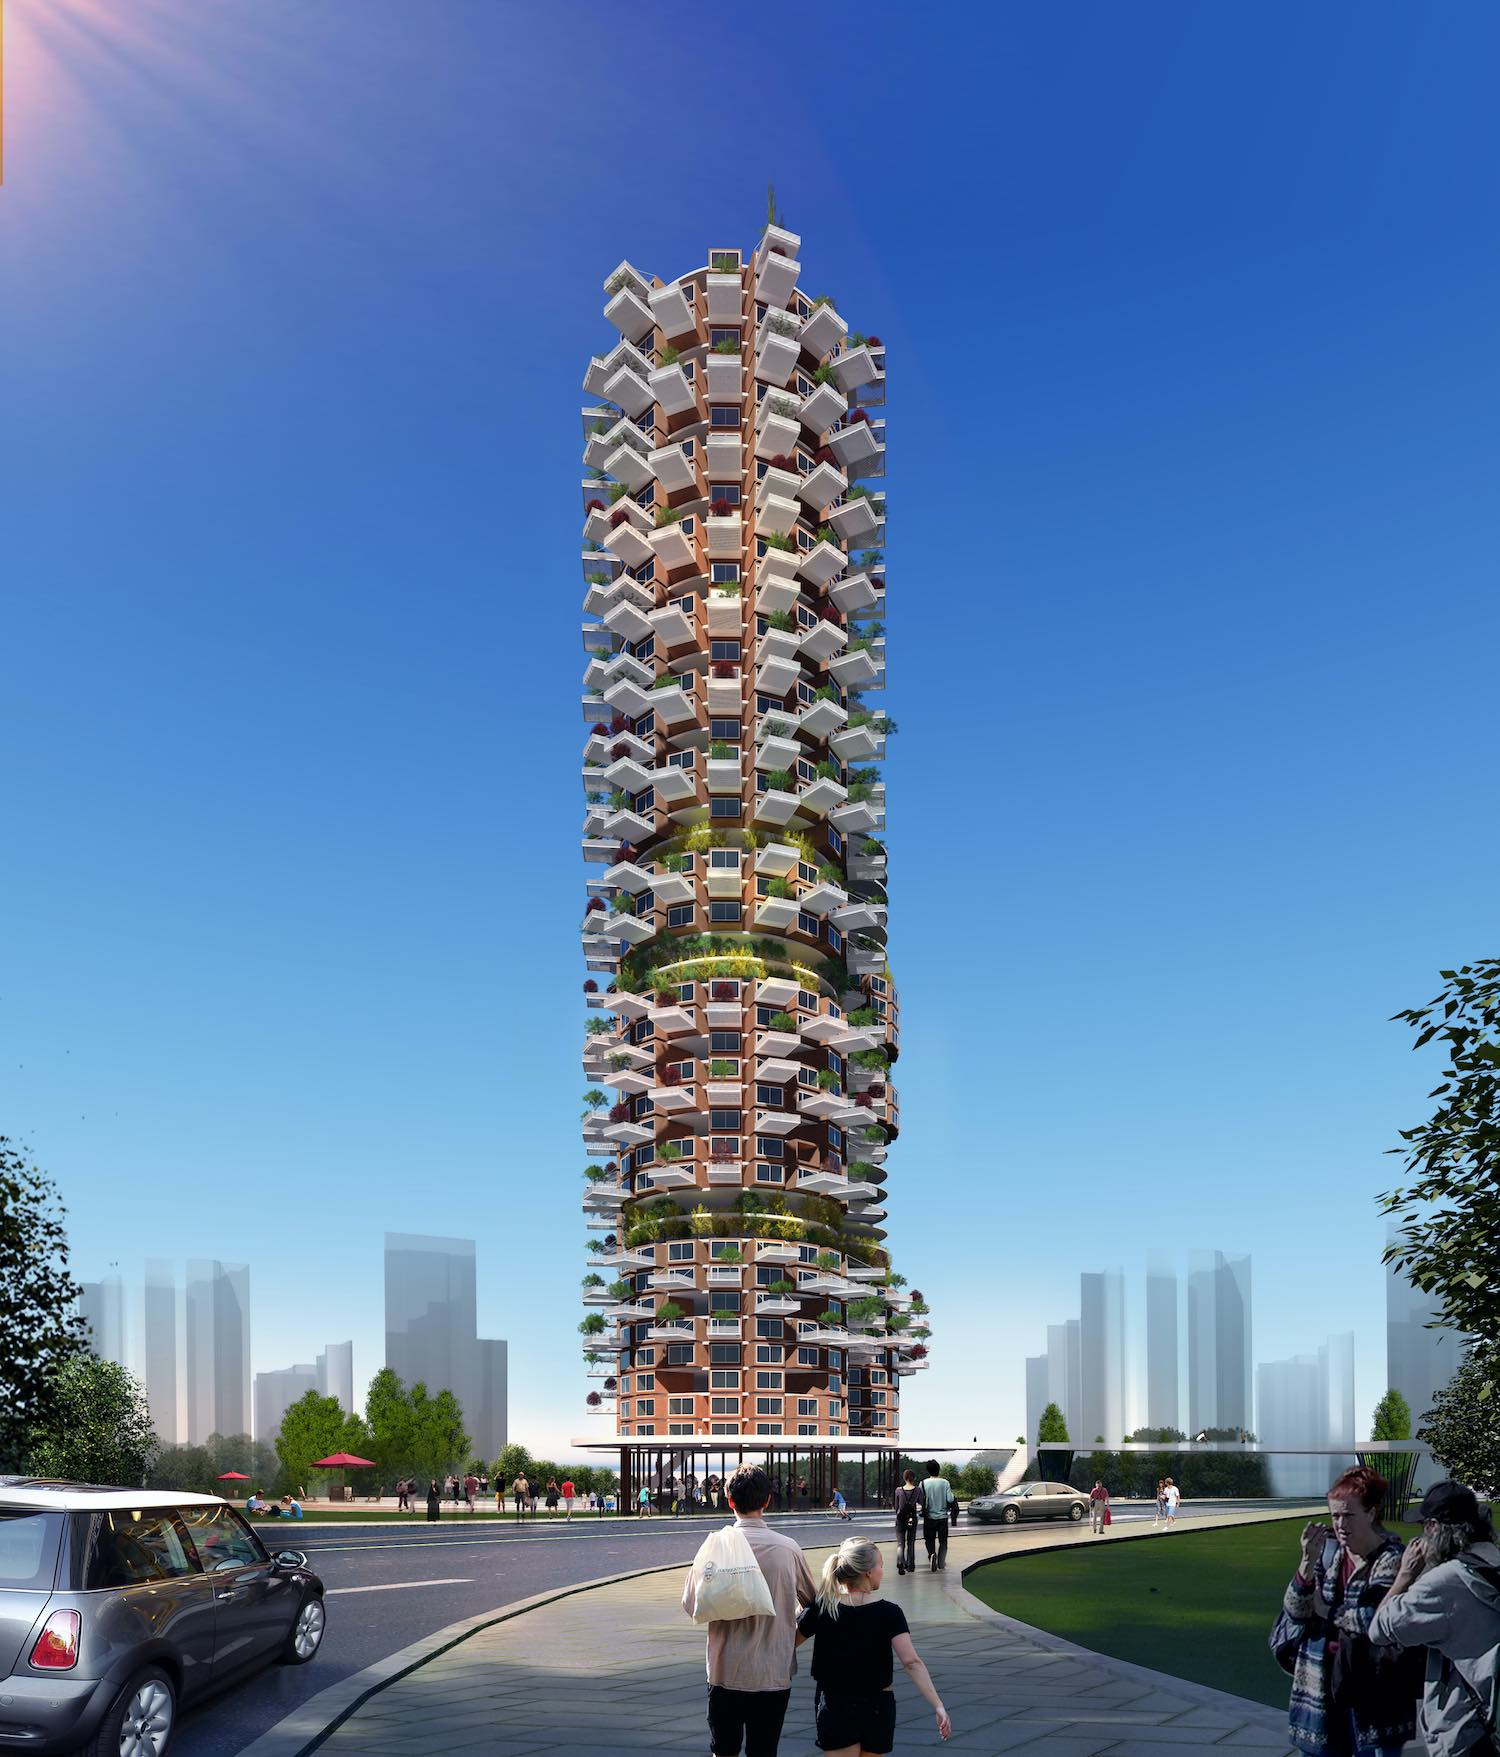 a sustainable skyscraper with green balconies